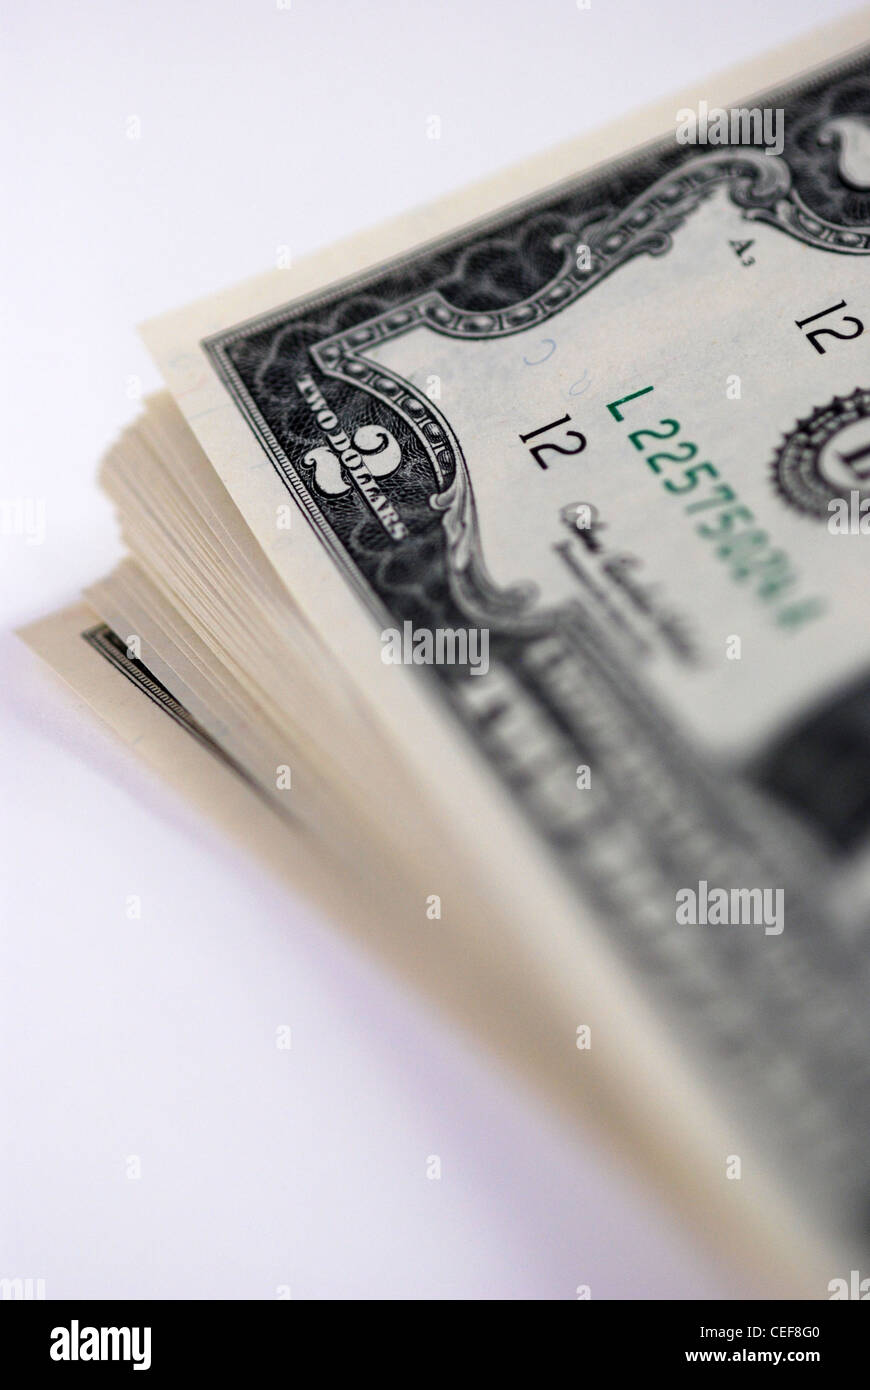 A stack of new USD two dollar bills.  Close up shot on white background.  Shallow depth of field. - Stock Image